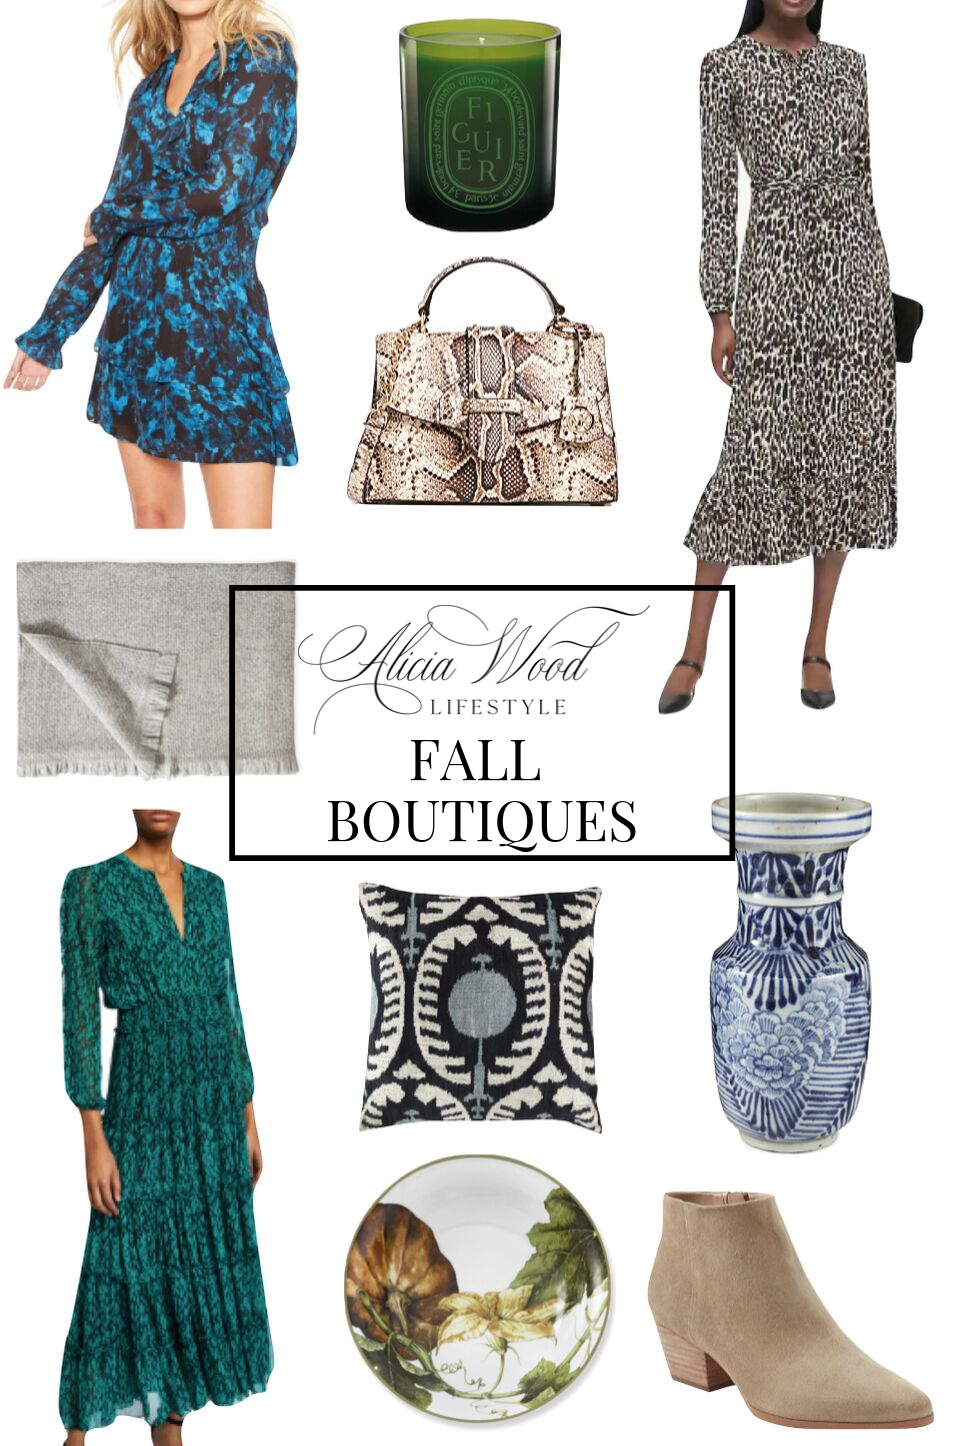 Alicia Wood Lifestyle Fall Boutiques